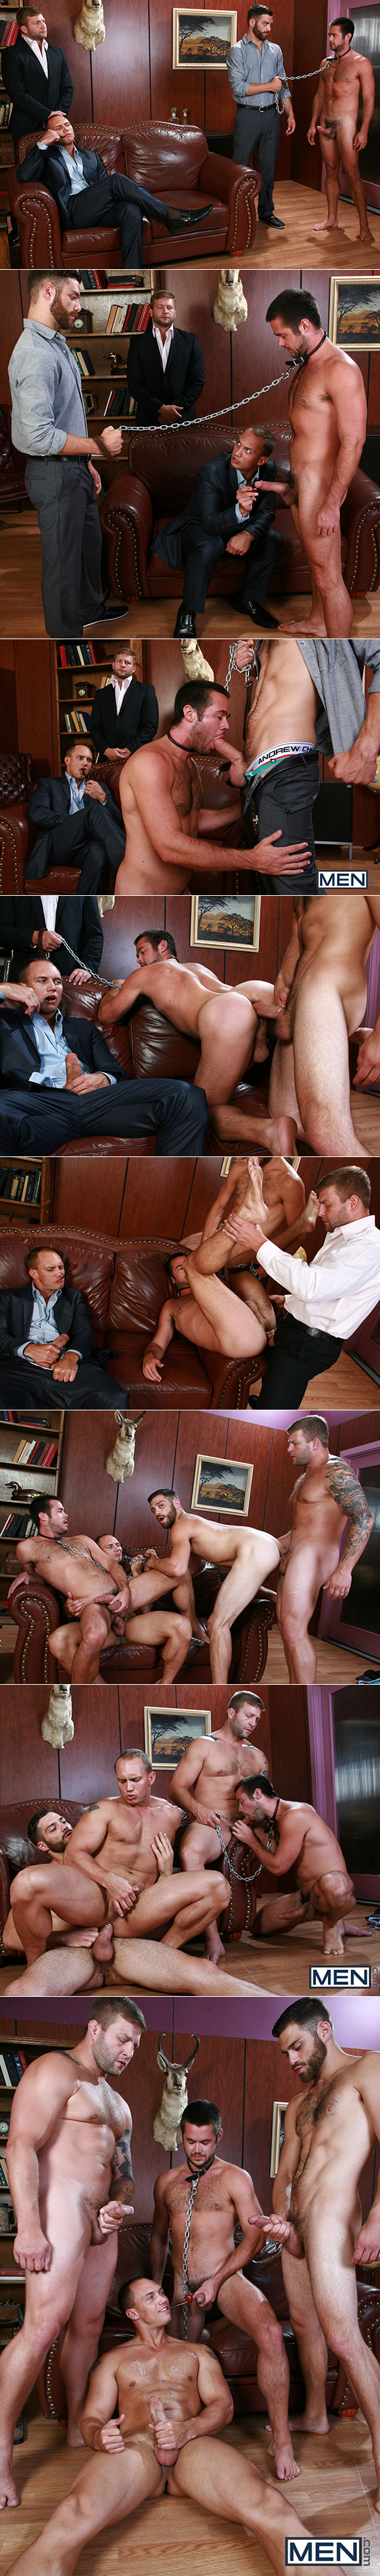 "Men.com: John Magnum, Colby Jansen, Tommy Defendi and Mike De Marko in ""Trying Out The Goods"""